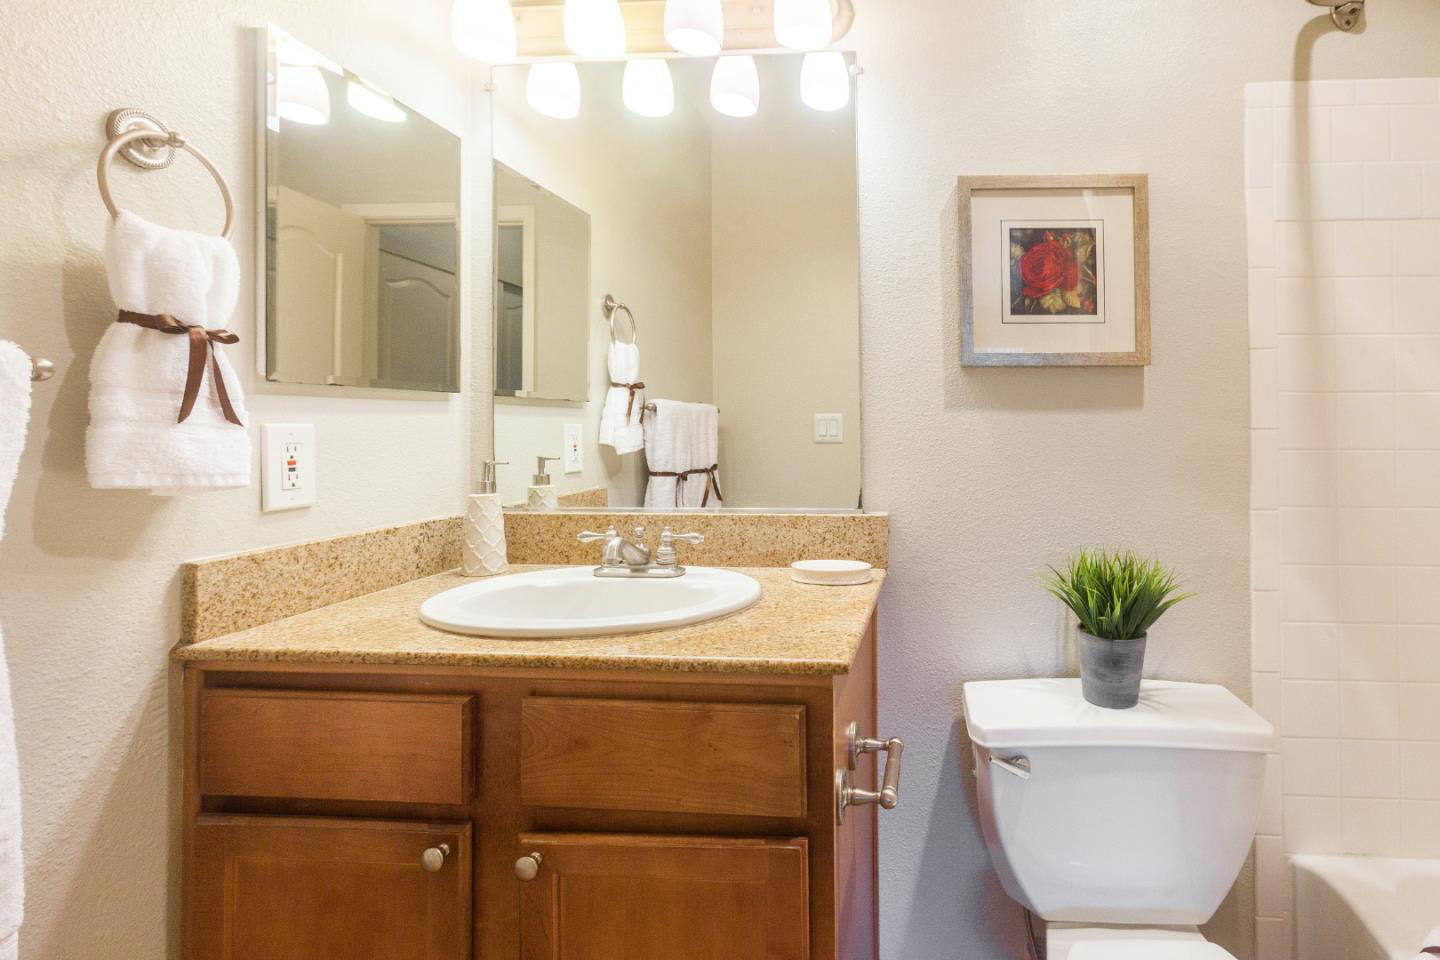 Condo 2 Bedrooms In Westside Shared Garage & Laundry Room